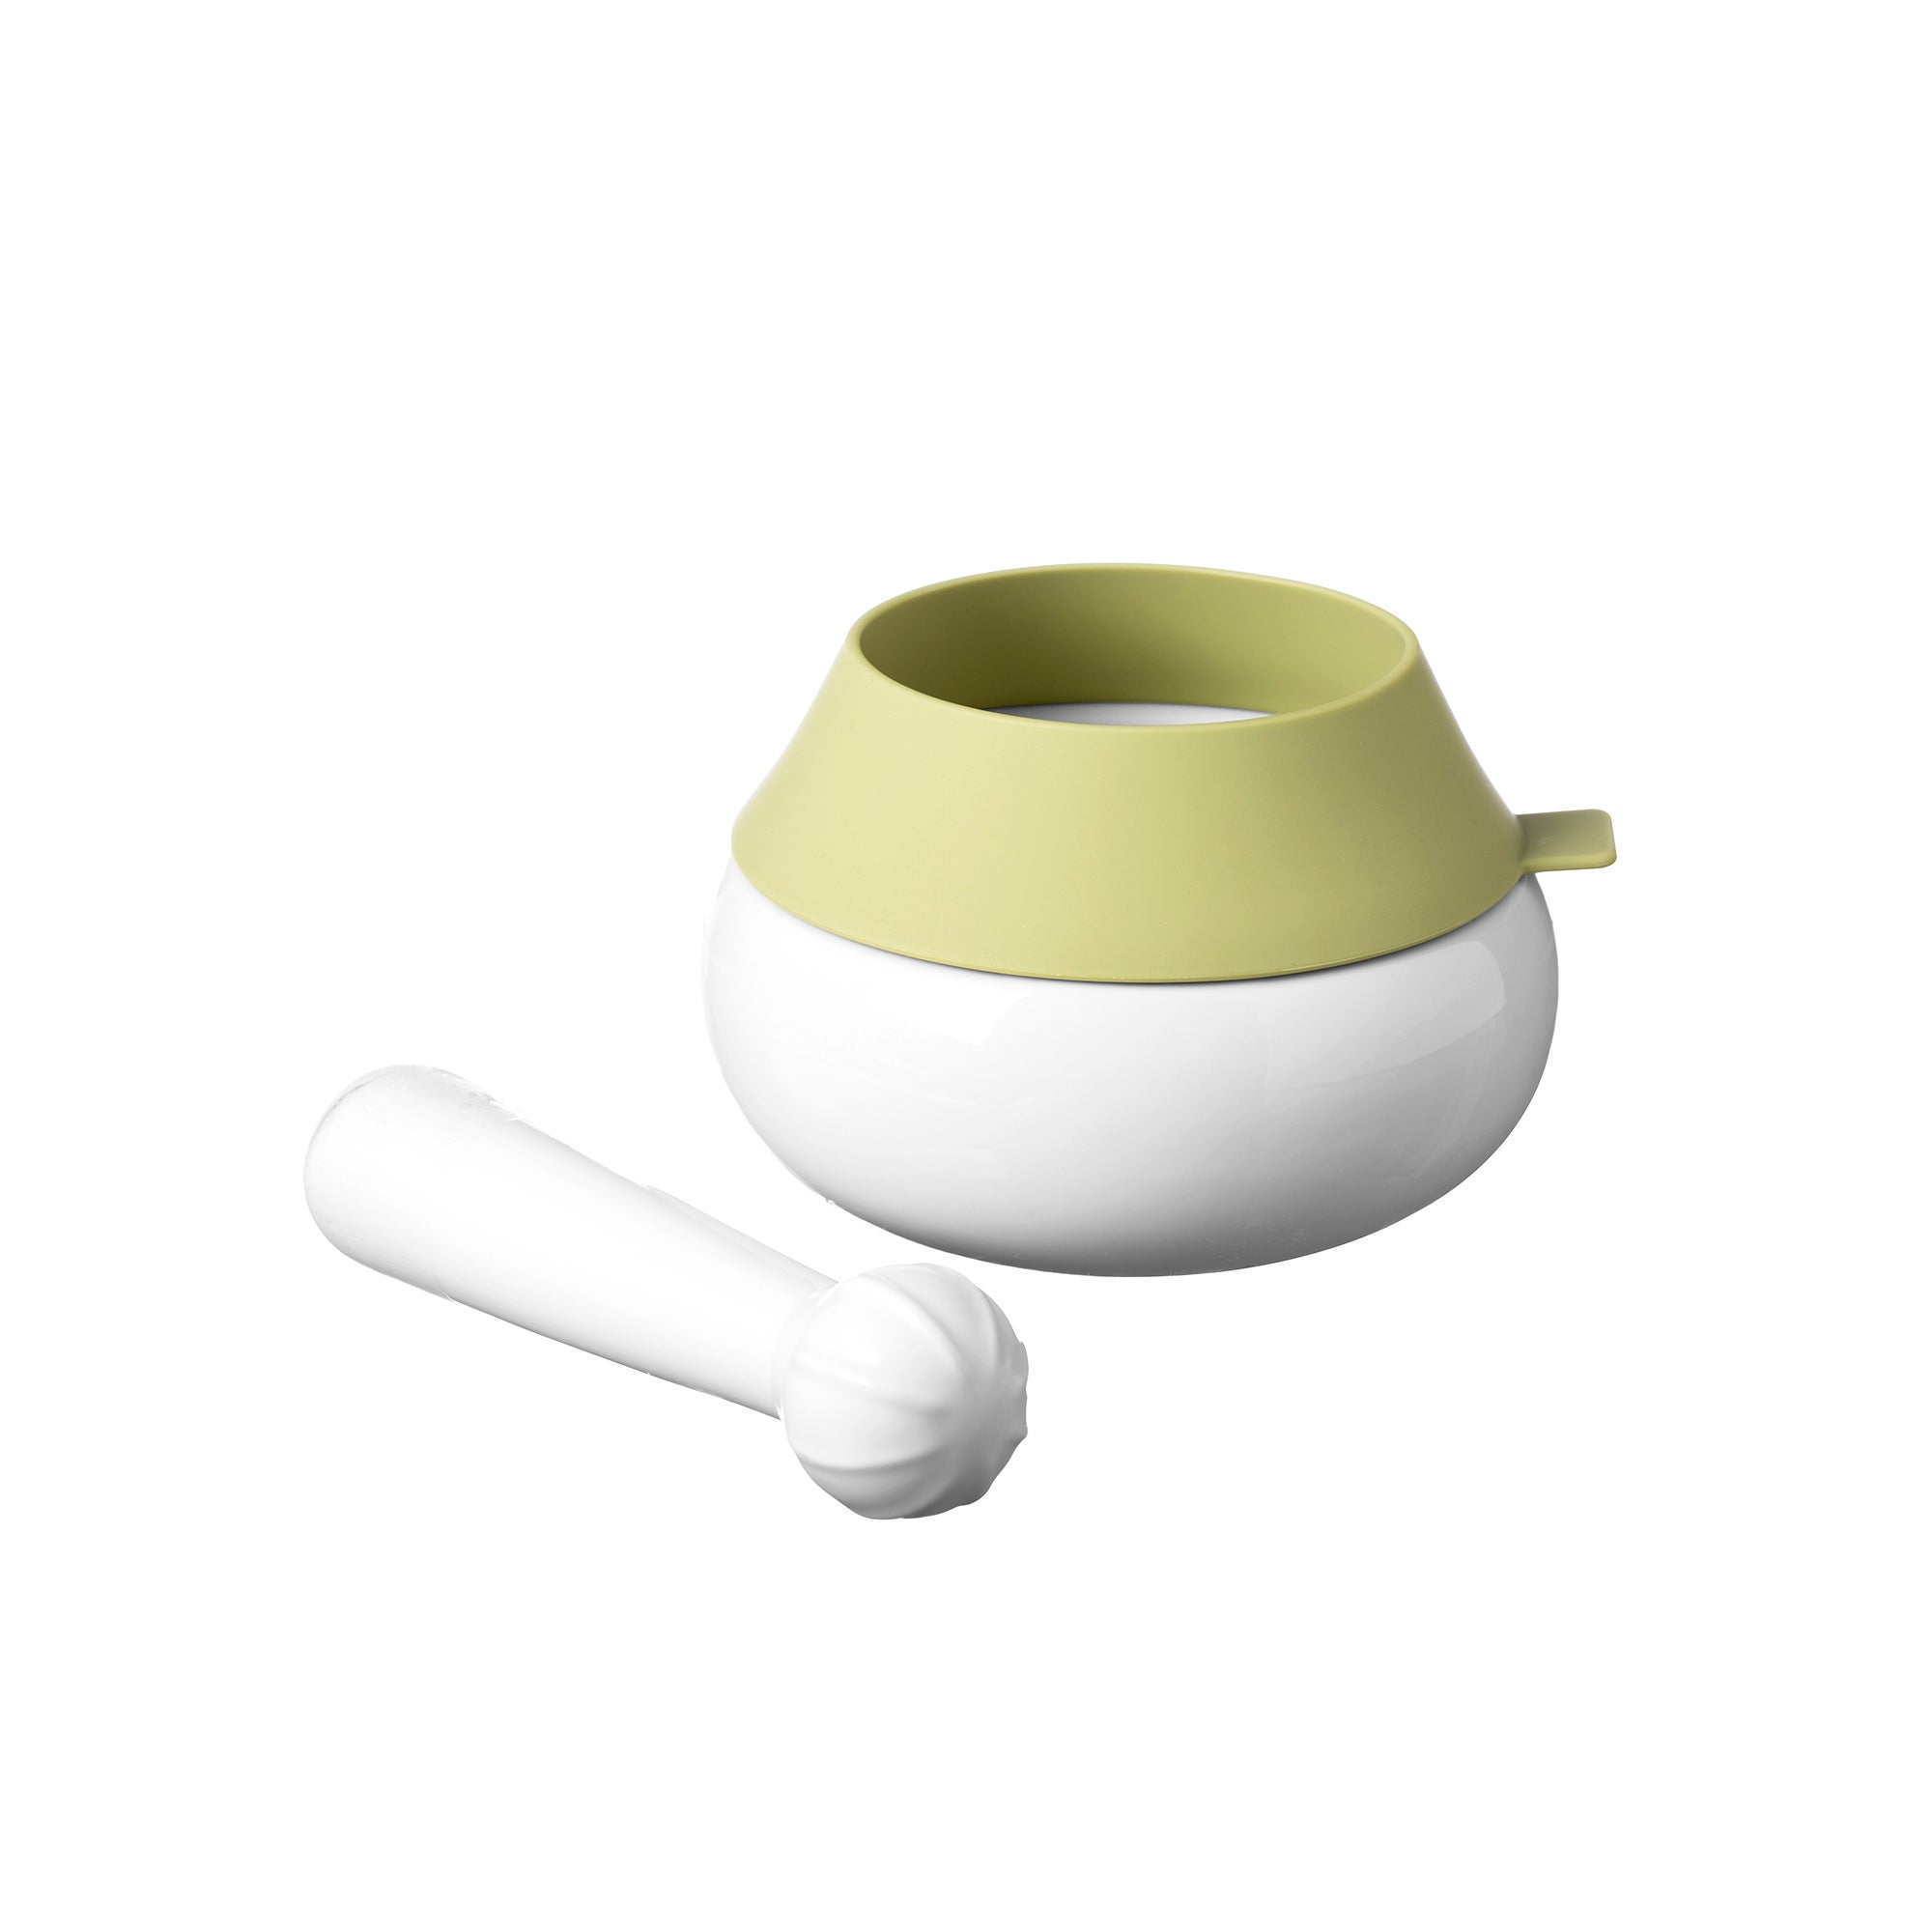 Photo of Typhoon seasonings pestle and mortar white